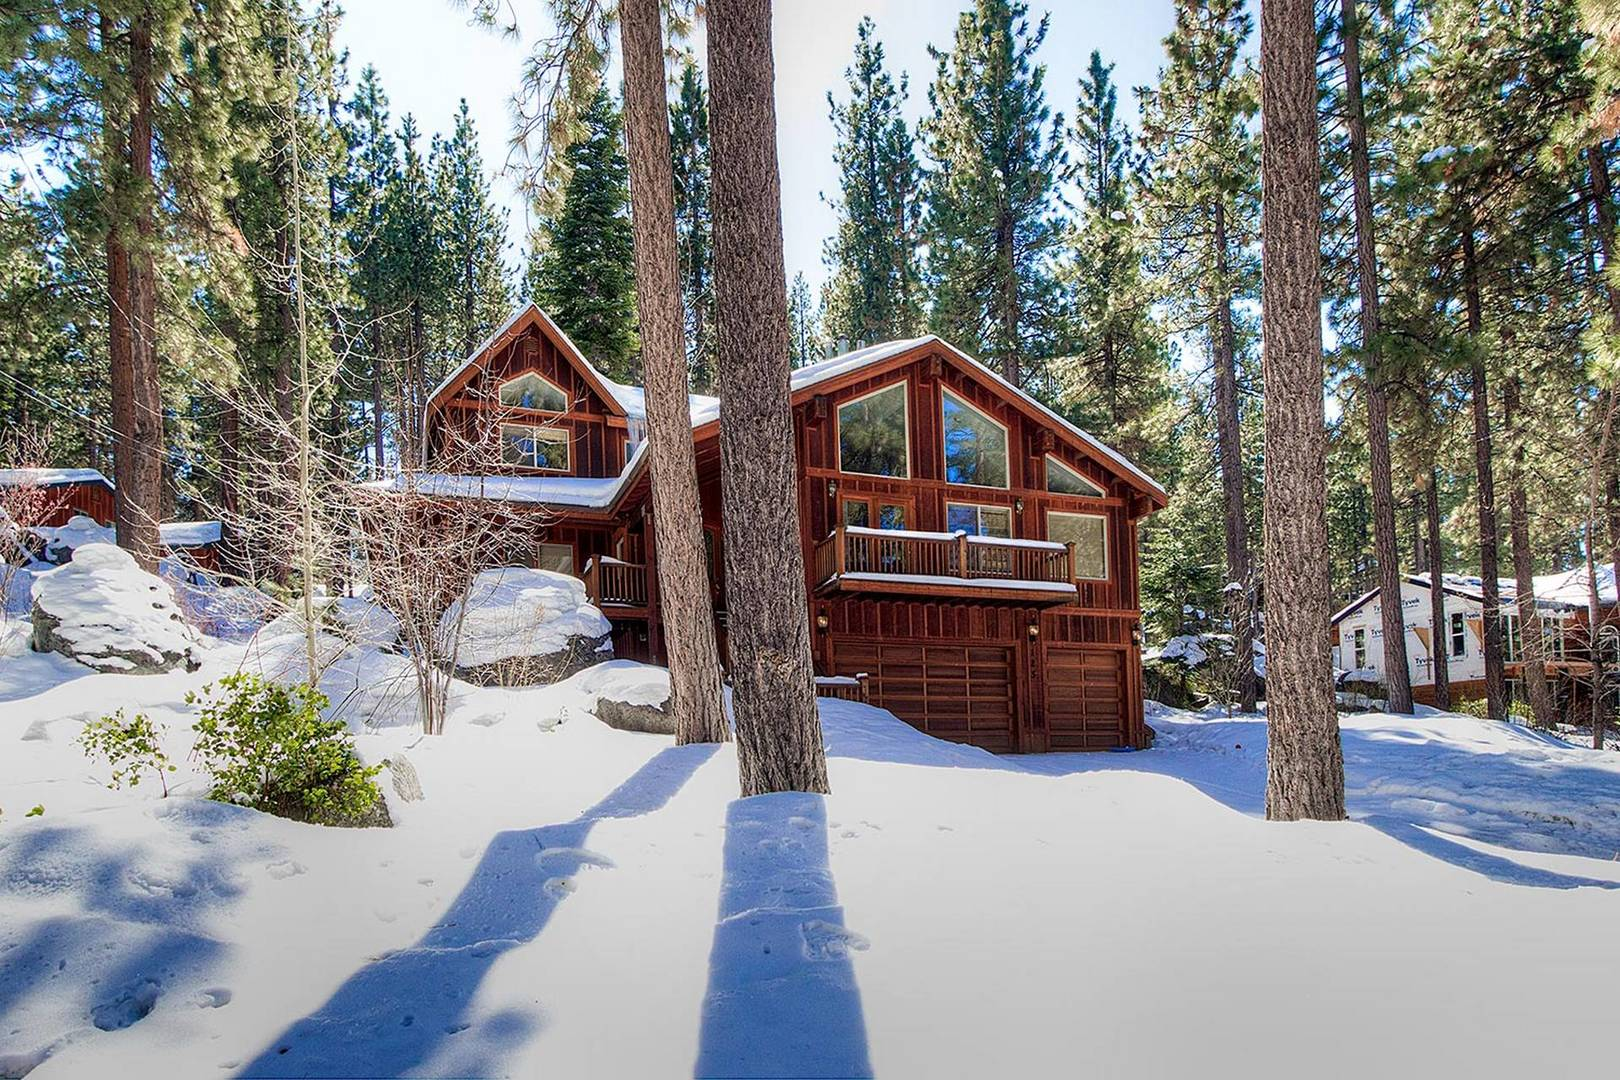 nvh1225 Lake tahoe vacation rental